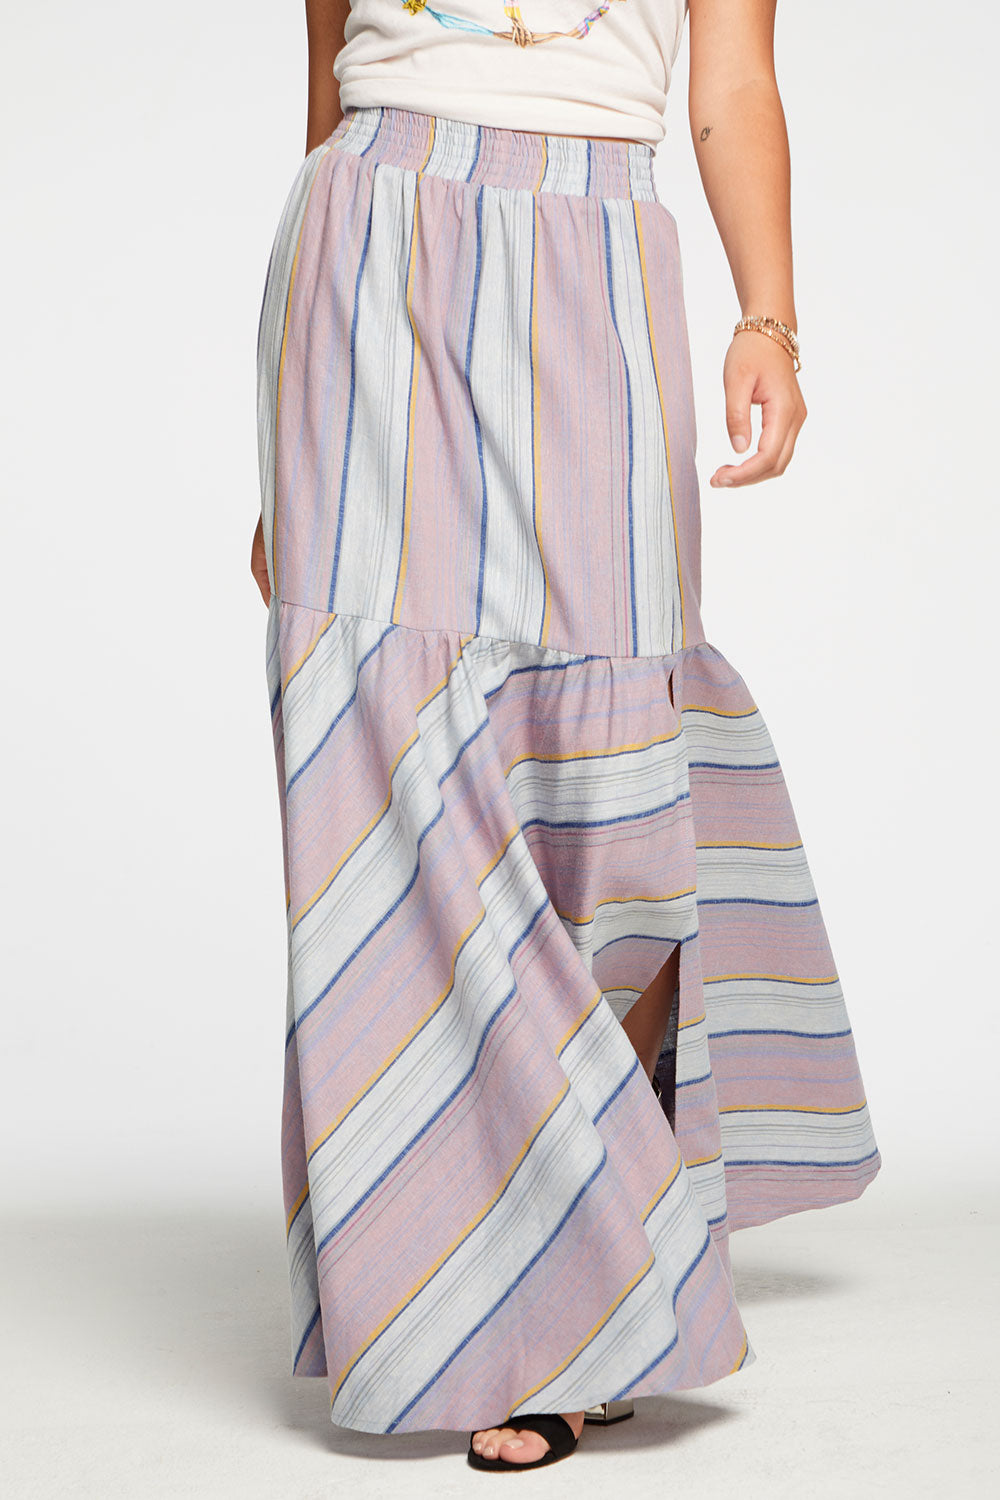 Beachy Linen Tiered Side Slit Maxi Skirt in Stripe WOMENS chaserbrand4.myshopify.com